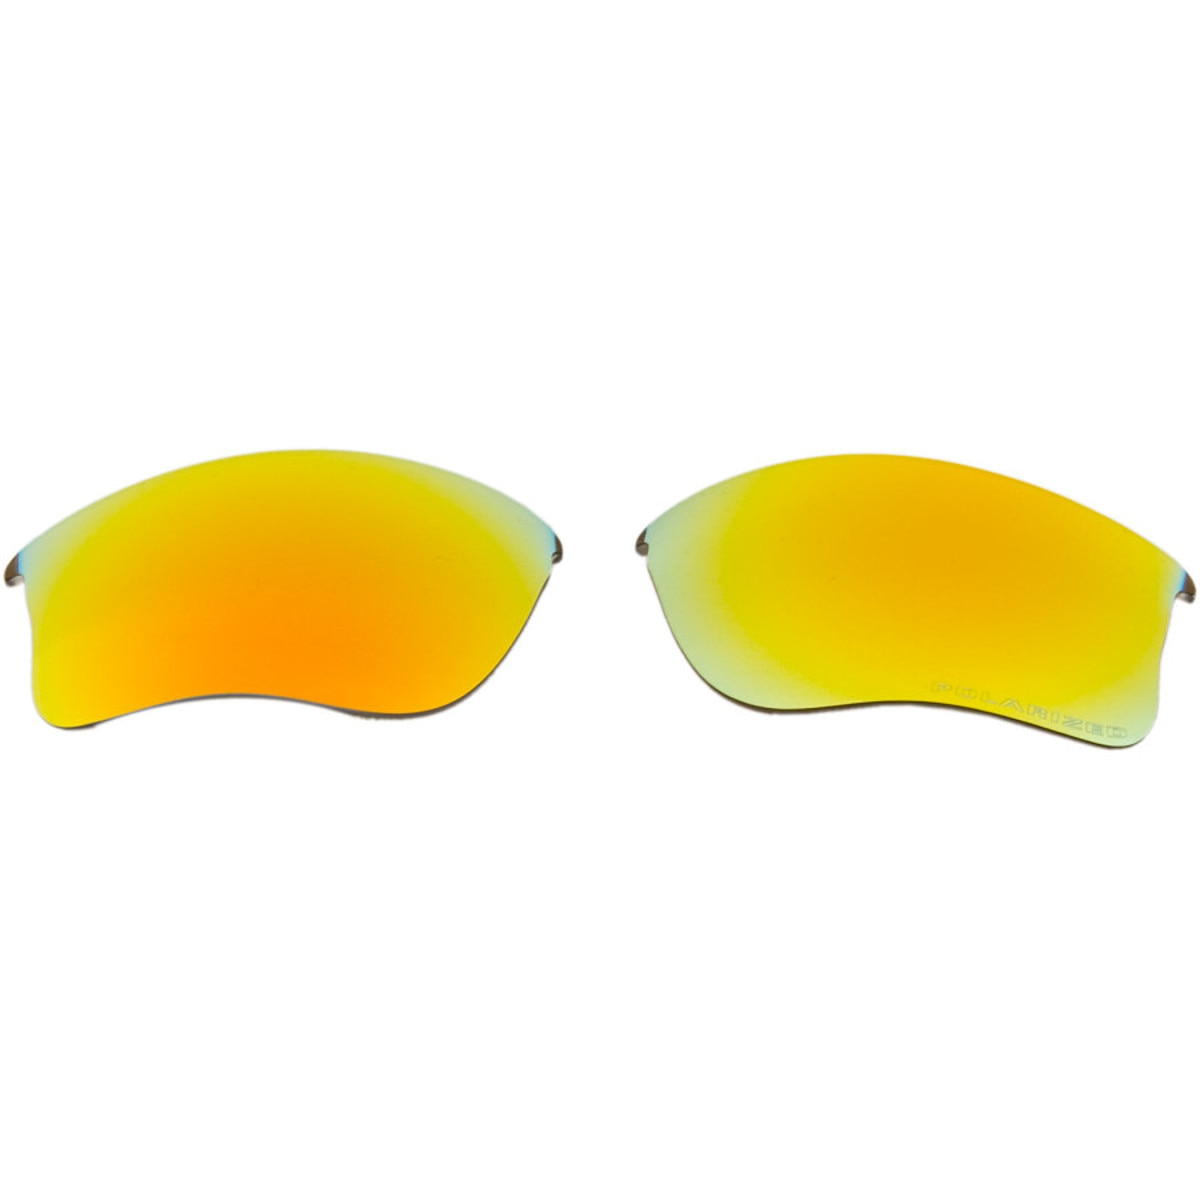 oakley half jacket replacement sleeves